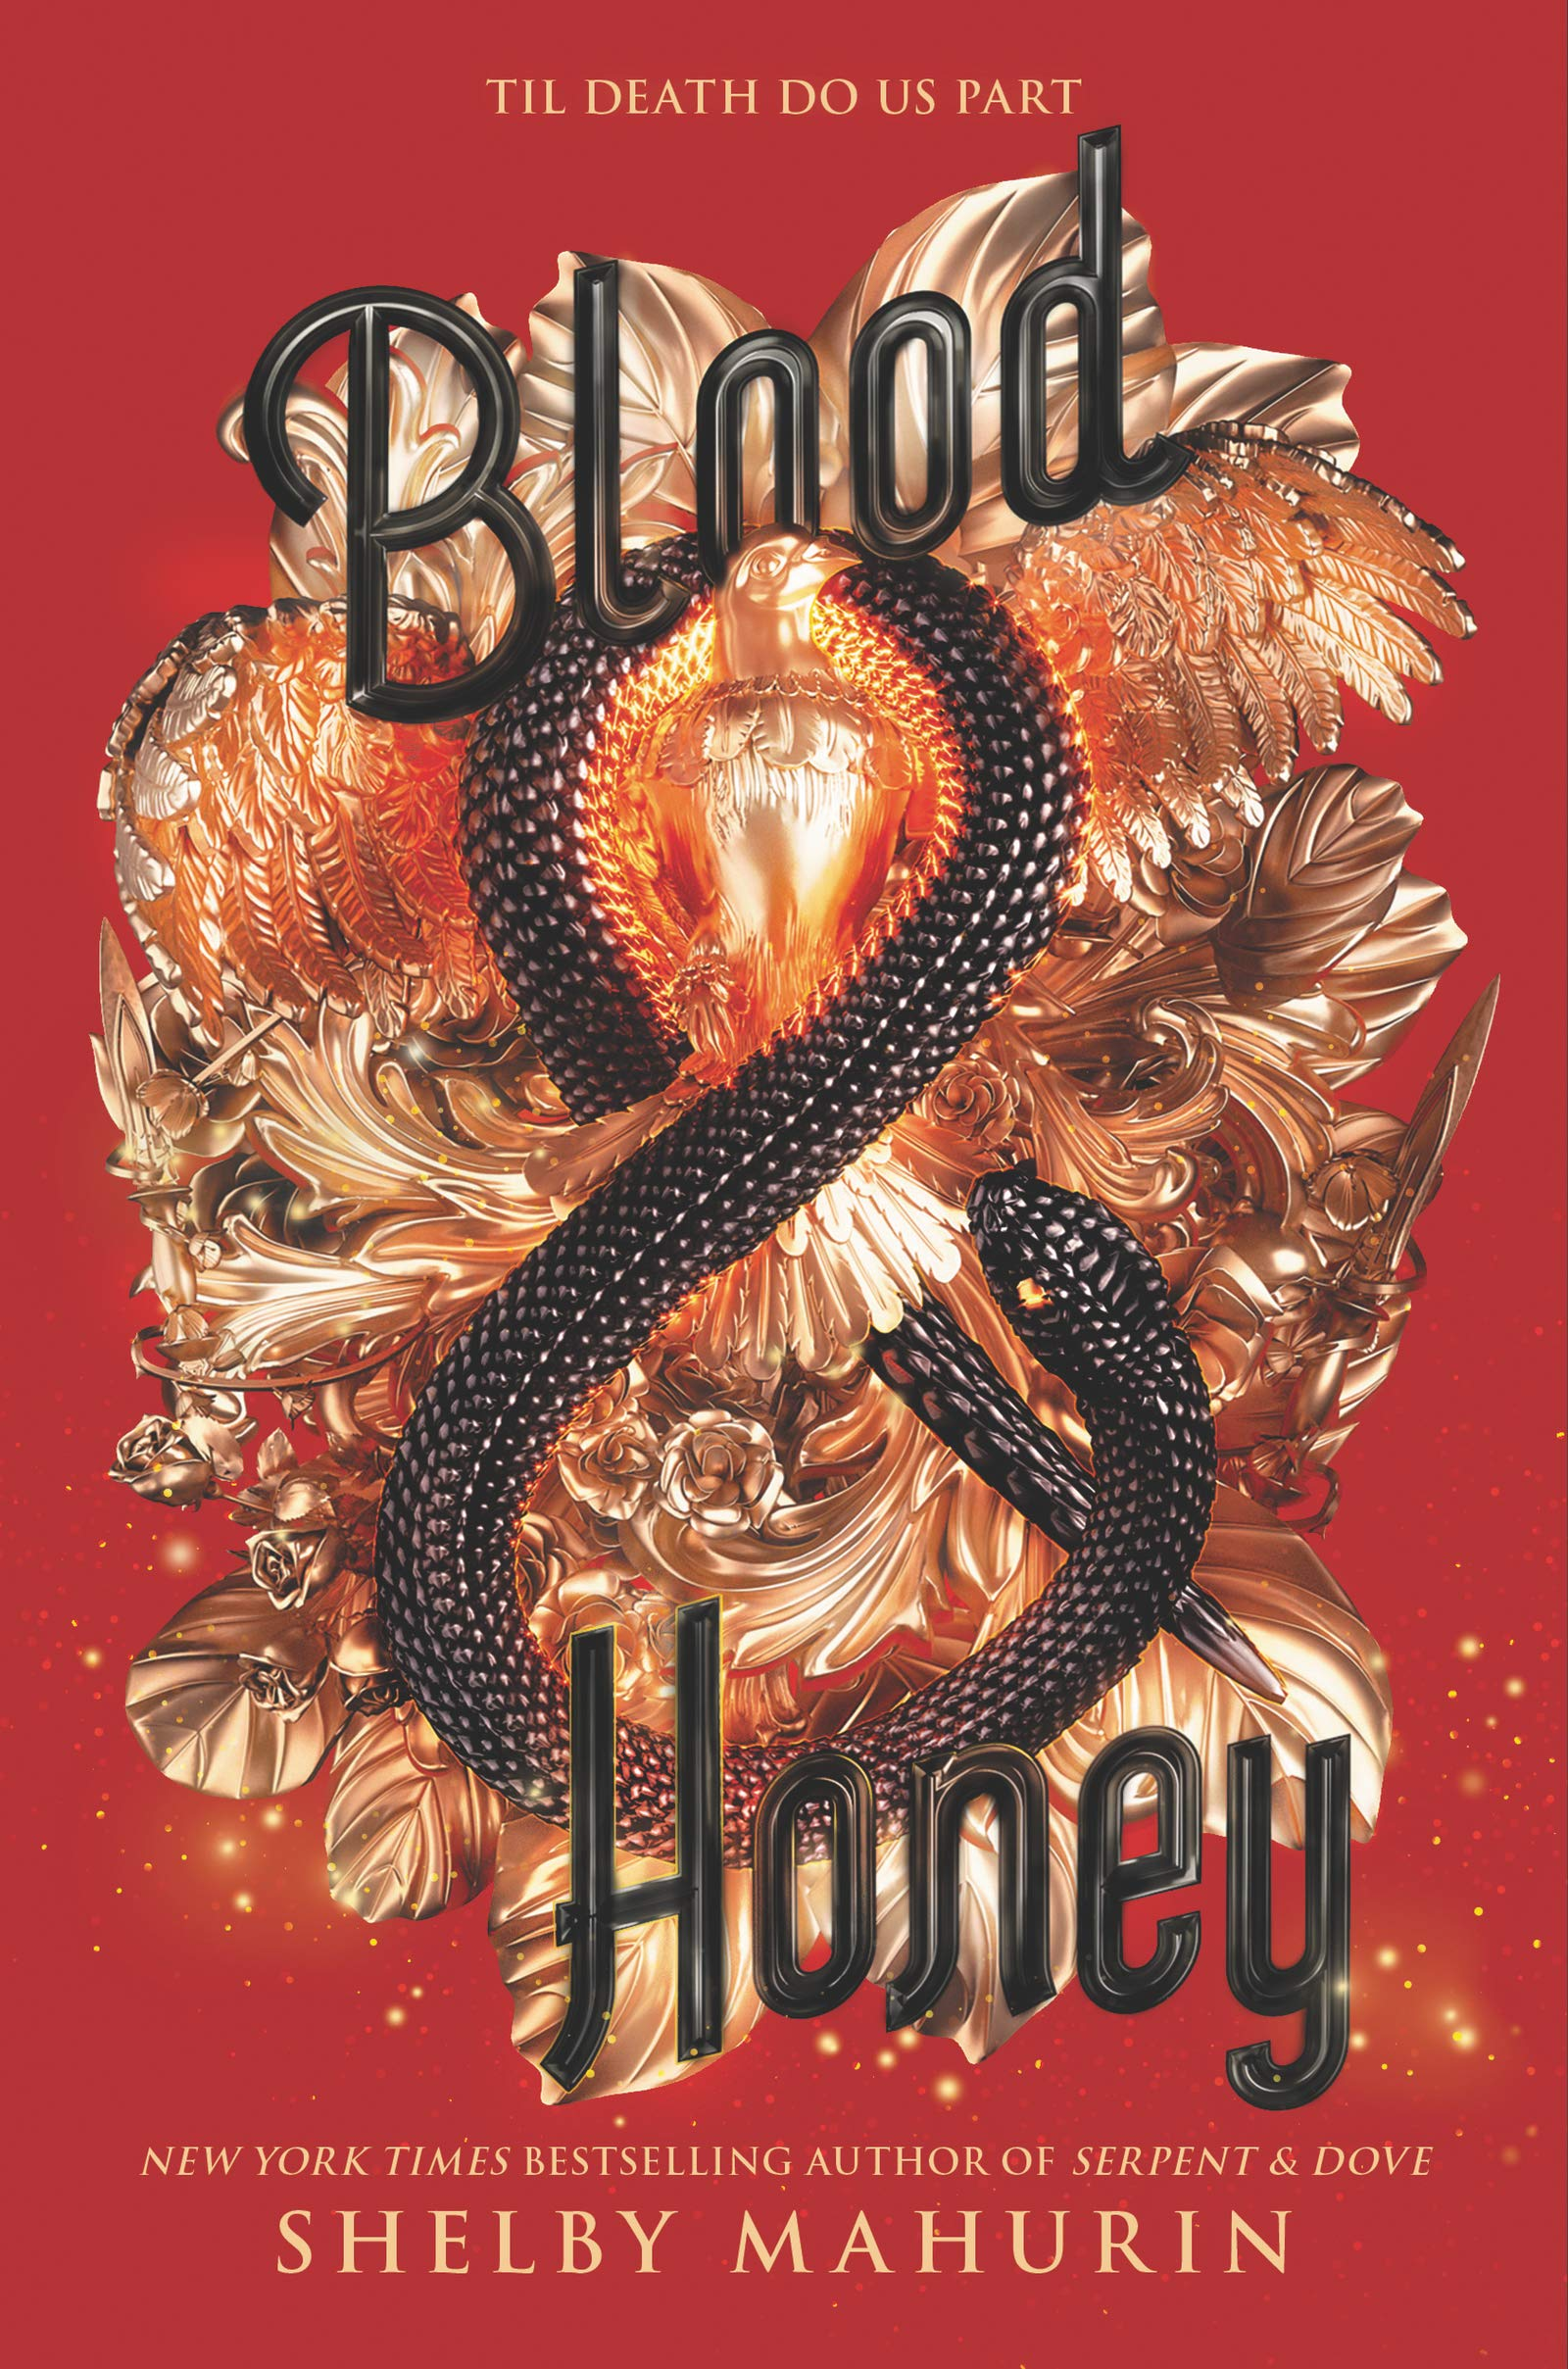 Amazon.com: Blood & Honey (Serpent & Dove) (9780062878052): Mahurin,  Shelby: Books